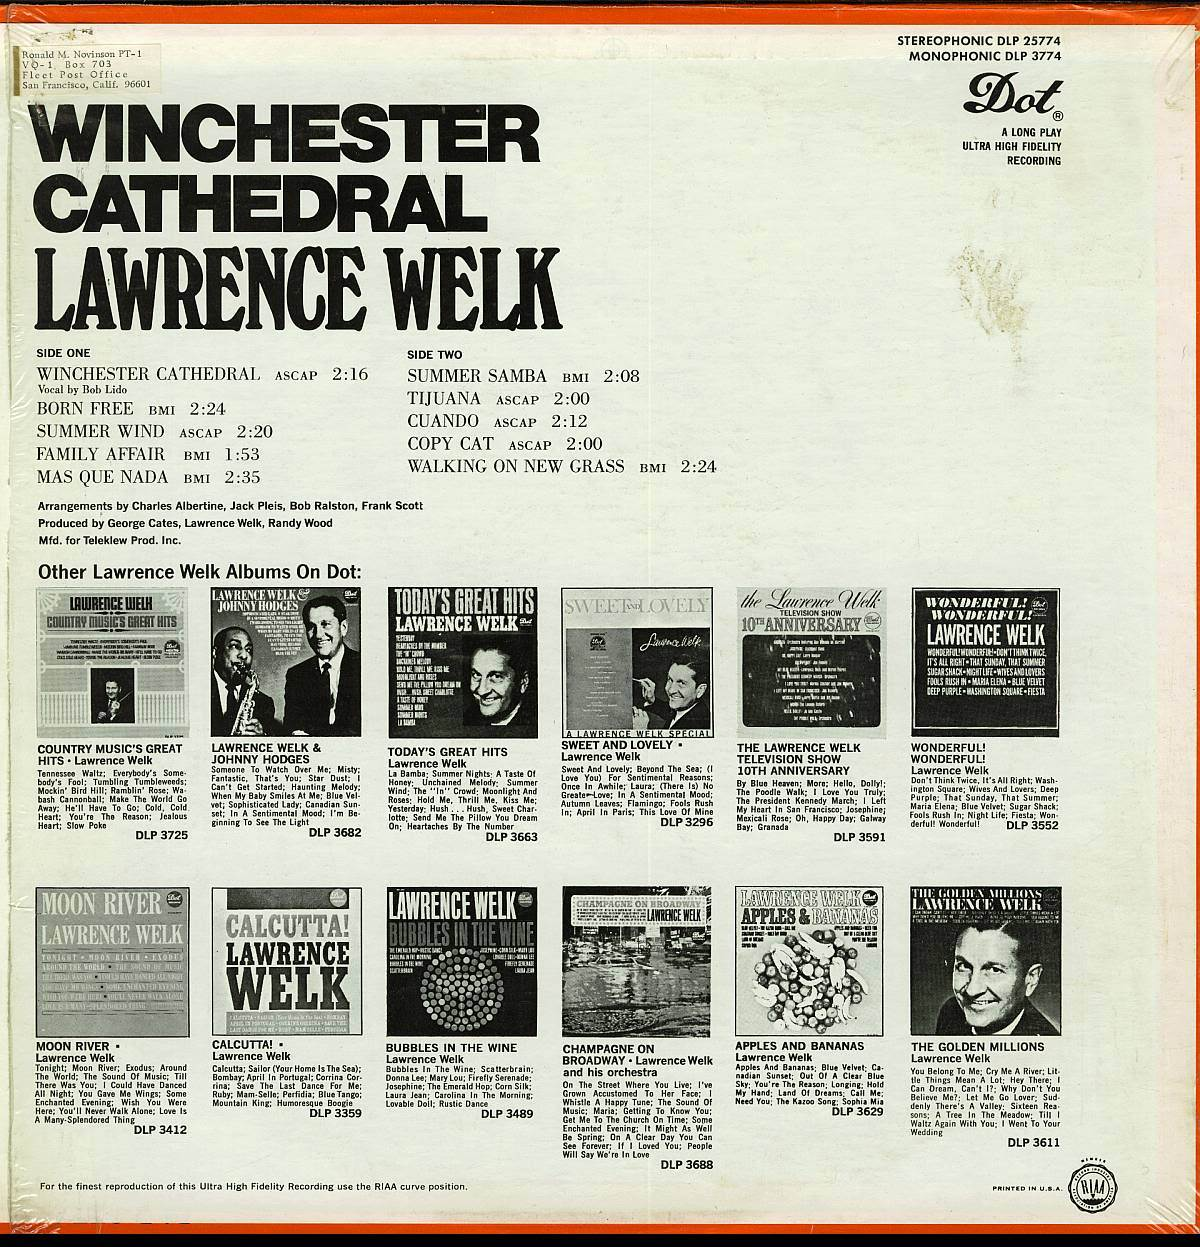 LAWRENCE WELK WINCHESTER CATHEDRAL LP DLP 25774  RARE